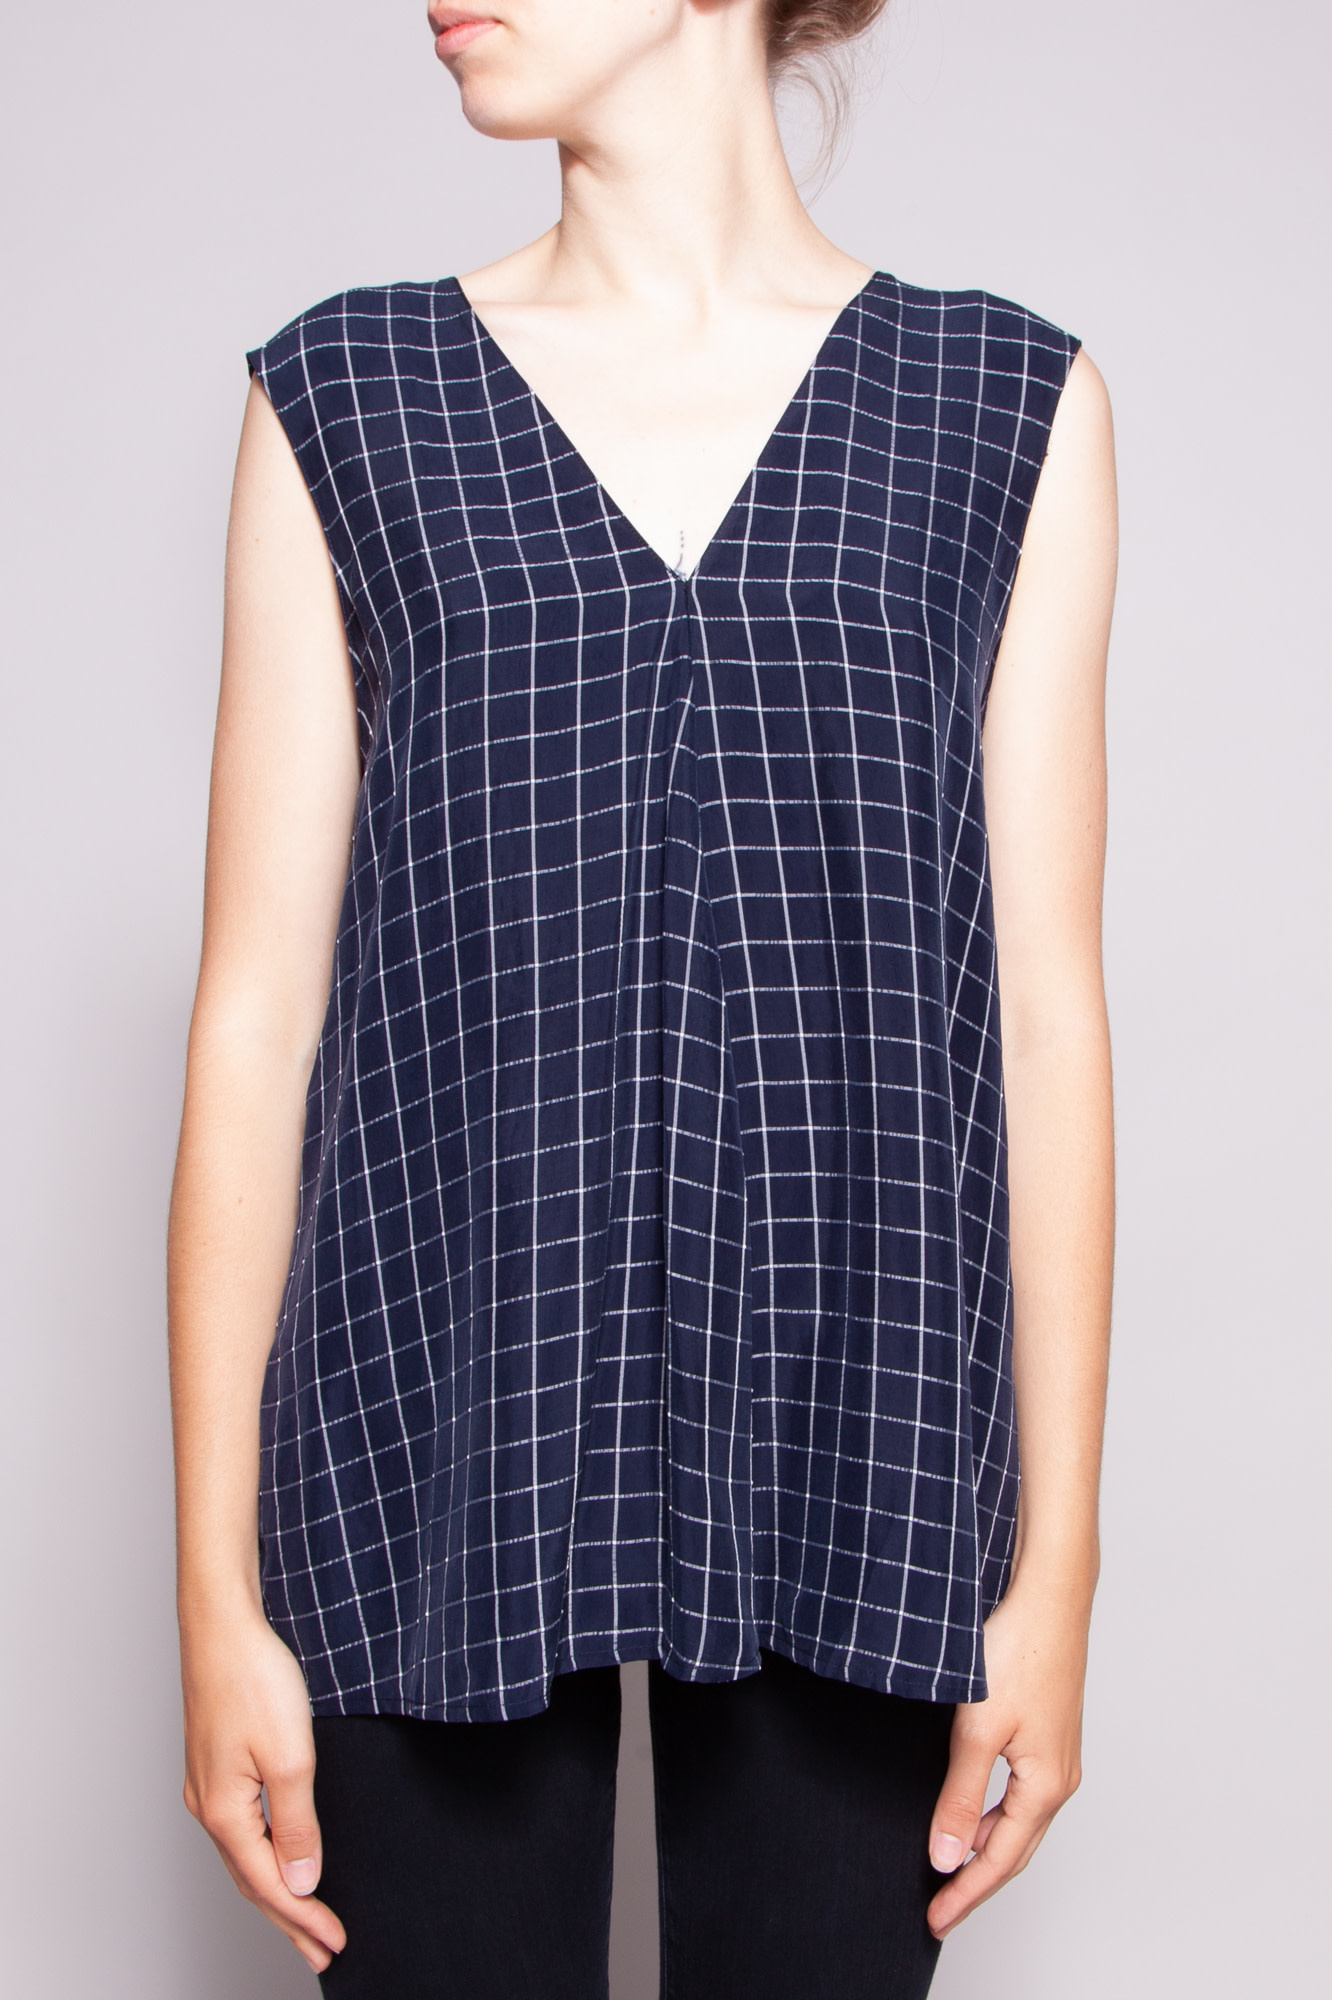 Theory BLUE CHECK SLEEVELESS TOP - NEW